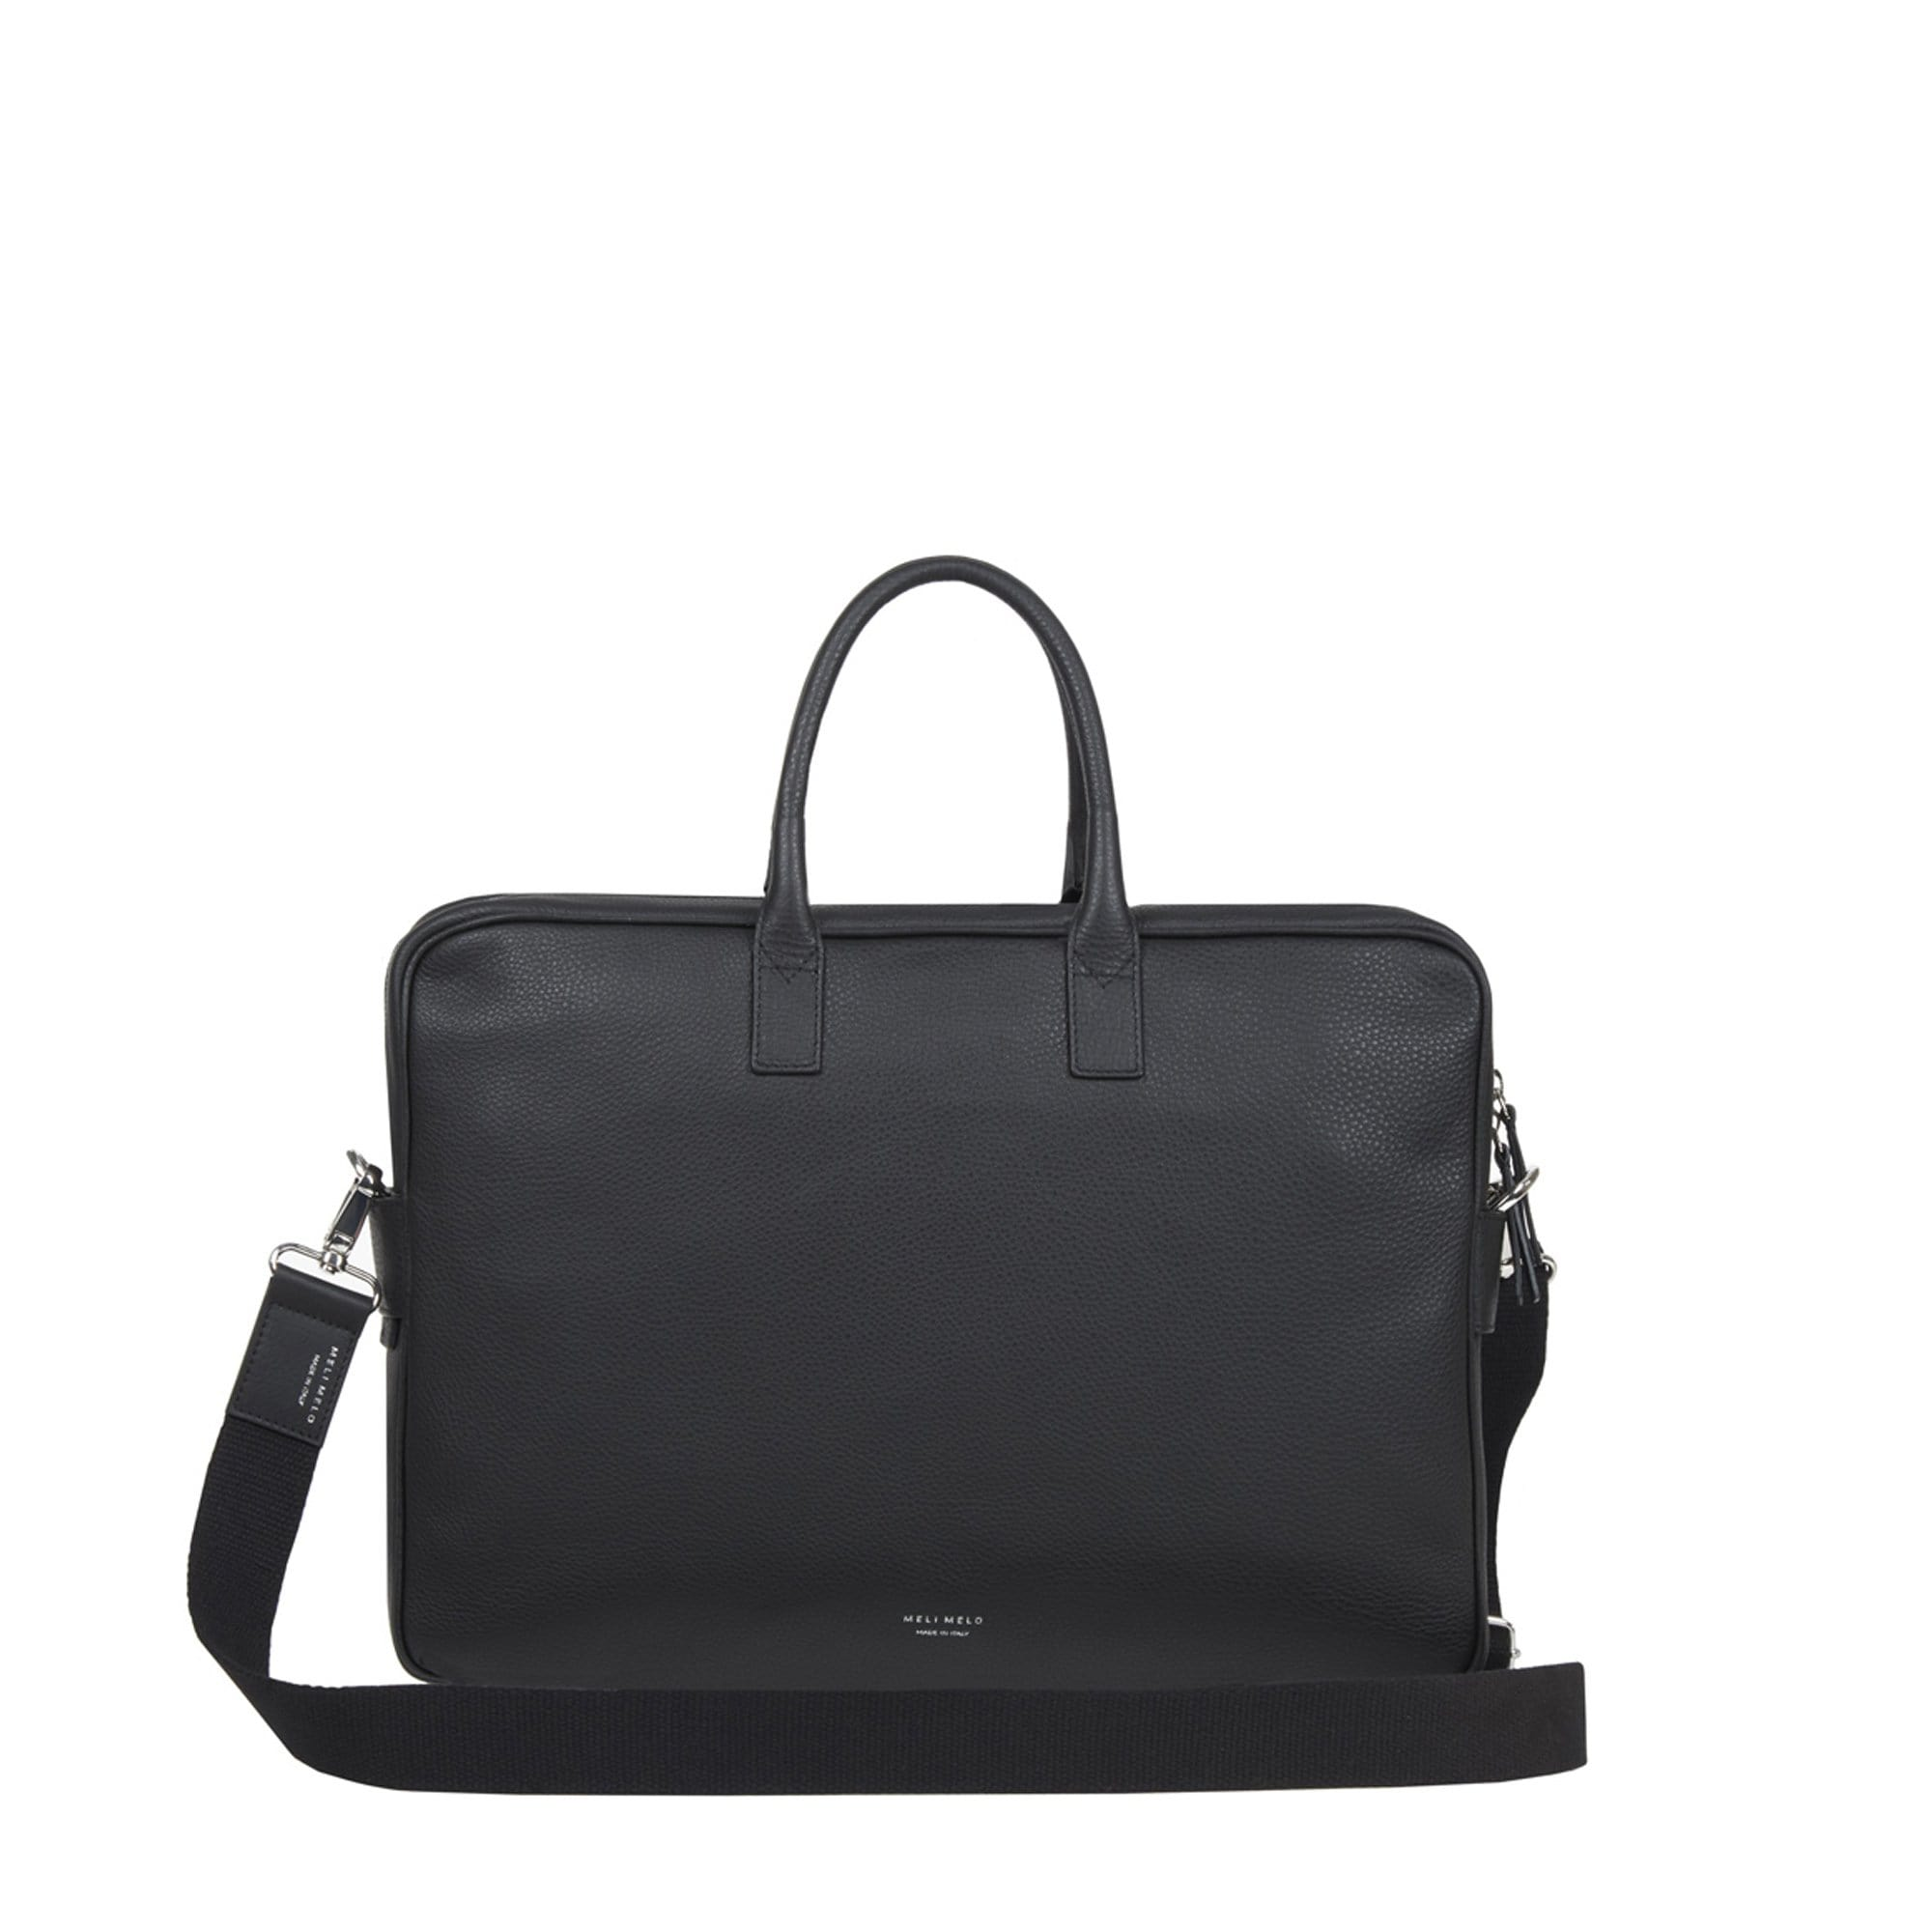 Briefcase in Black Leather for Men - meli melo Official